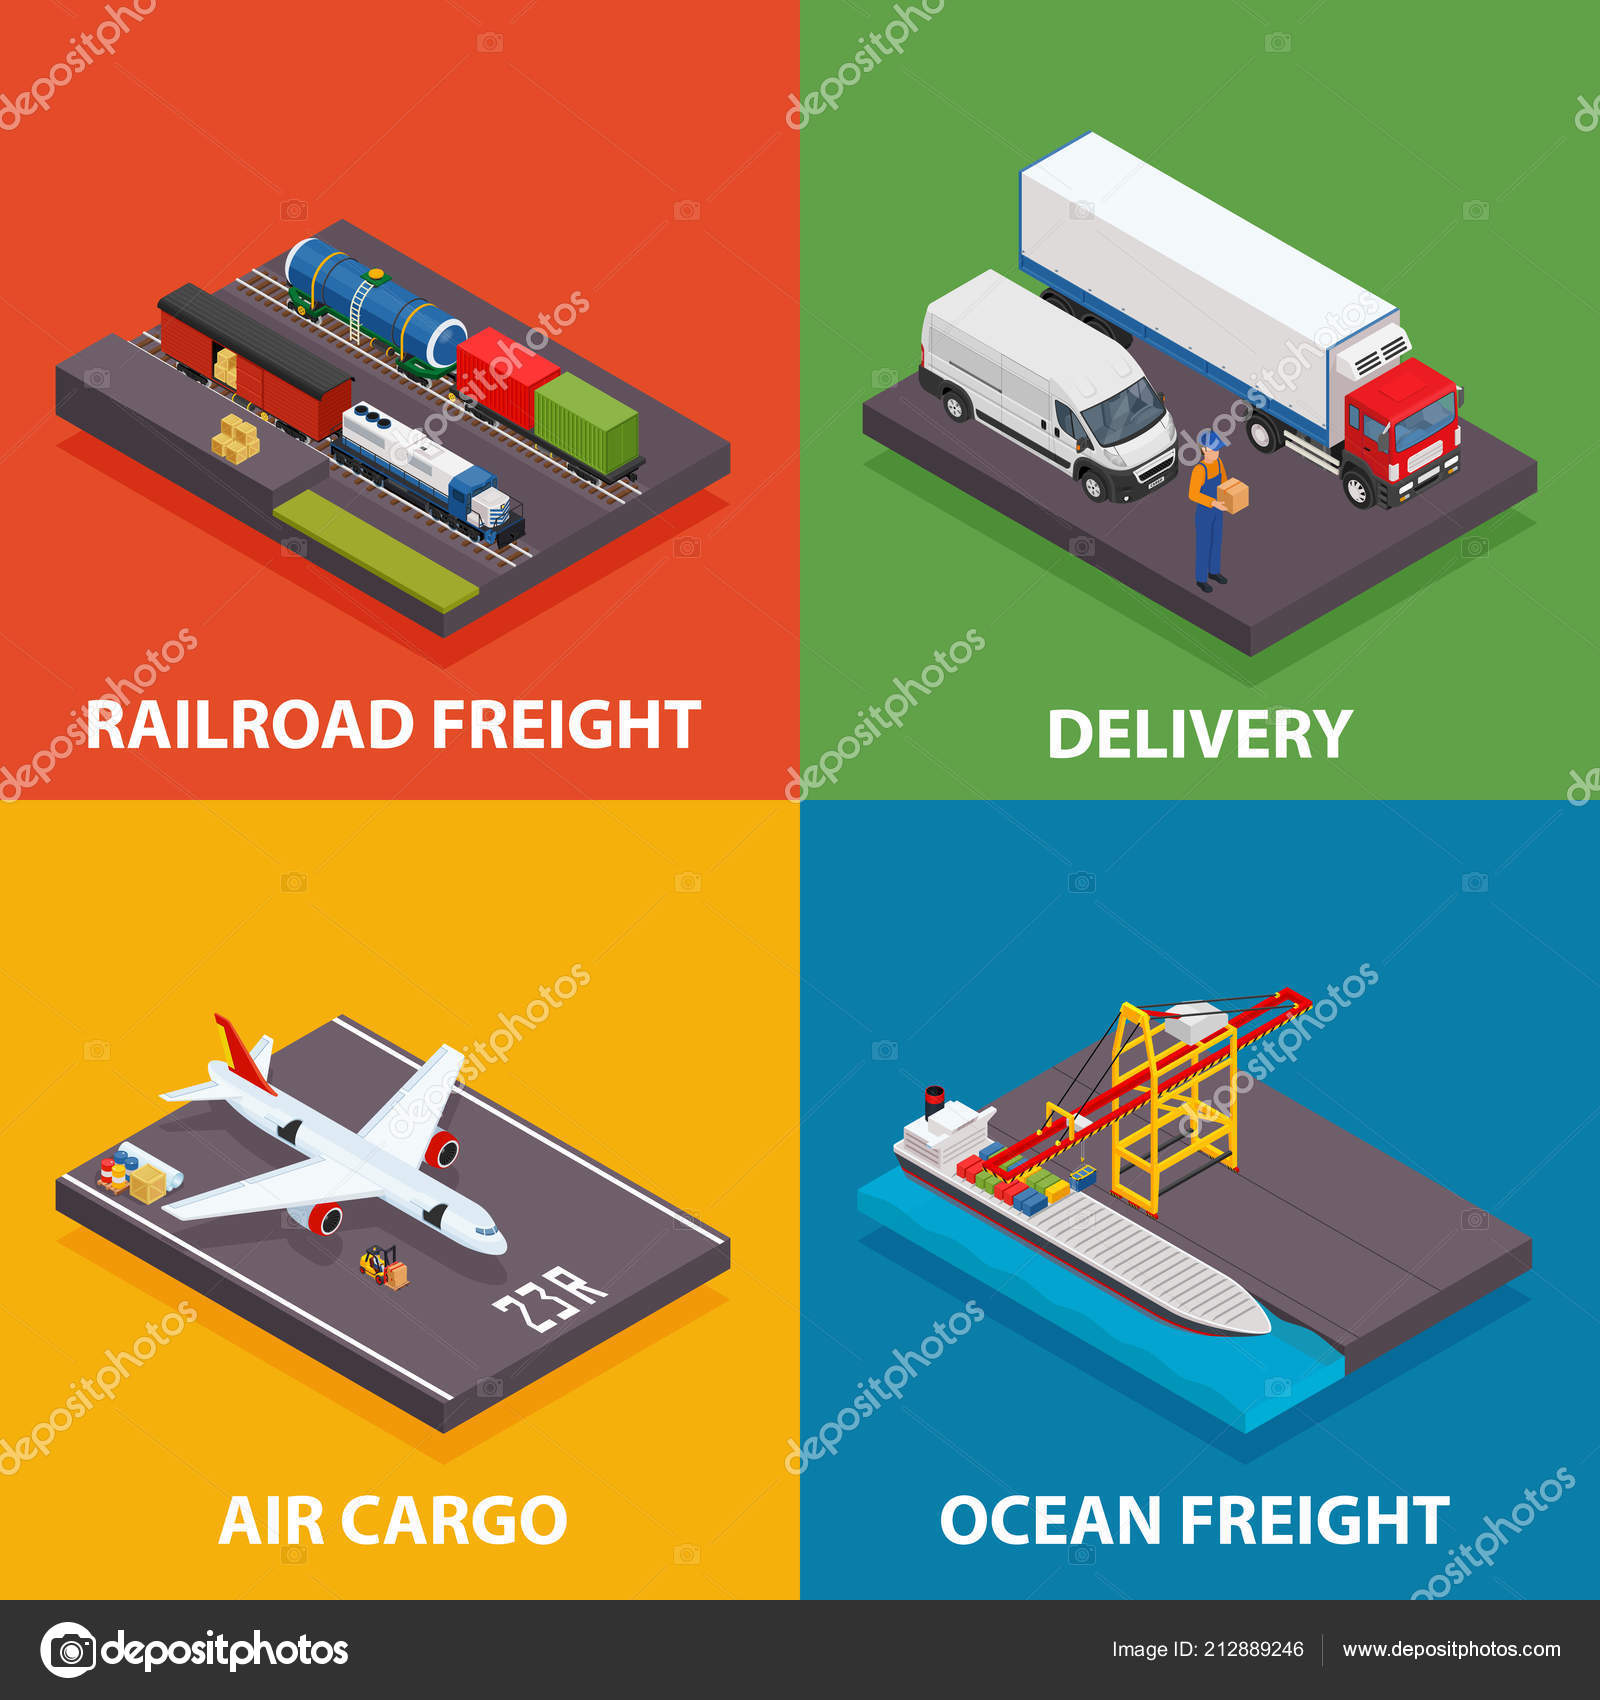 Cargo transportation including ocean and railroad freight